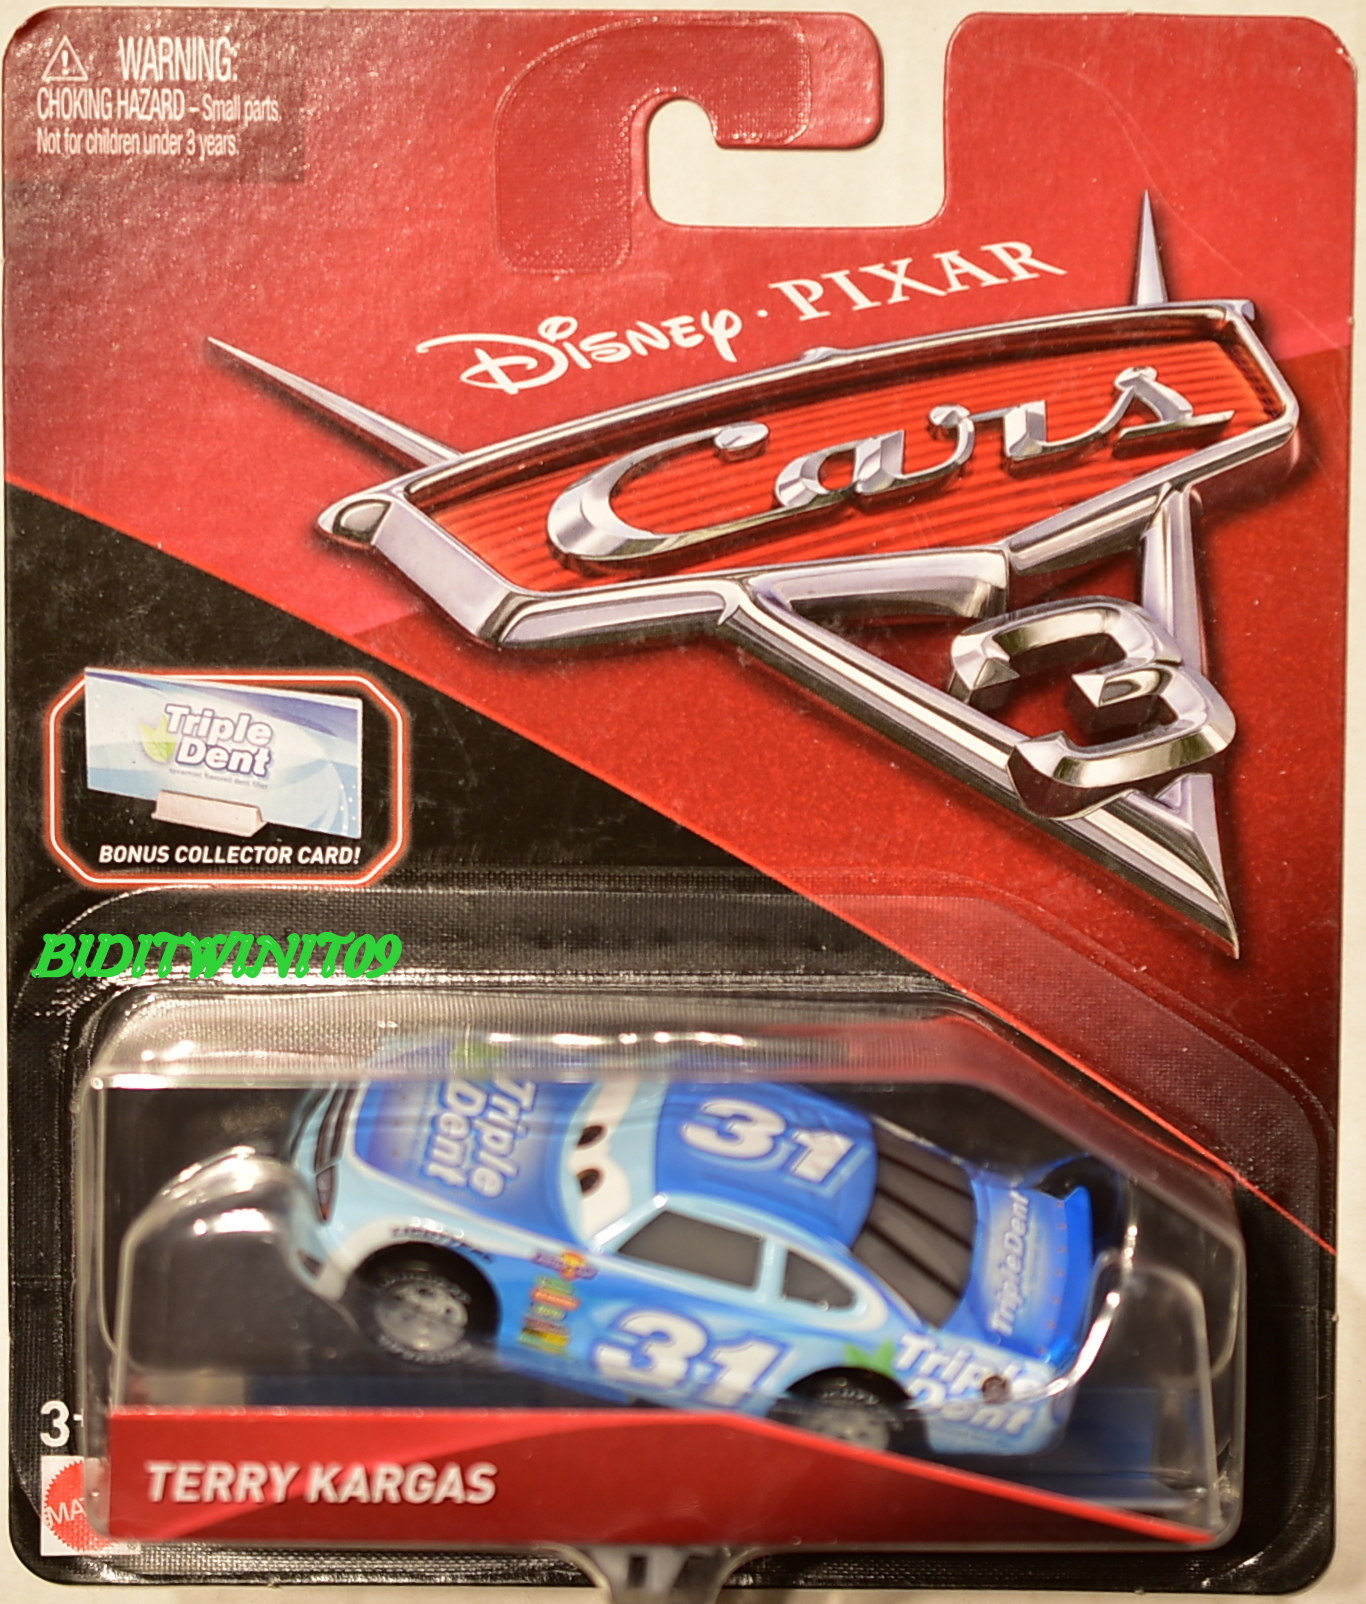 DISNEY PIXAR CARS 3 TERRY KARGAS BONUS COLLECTOR CARD